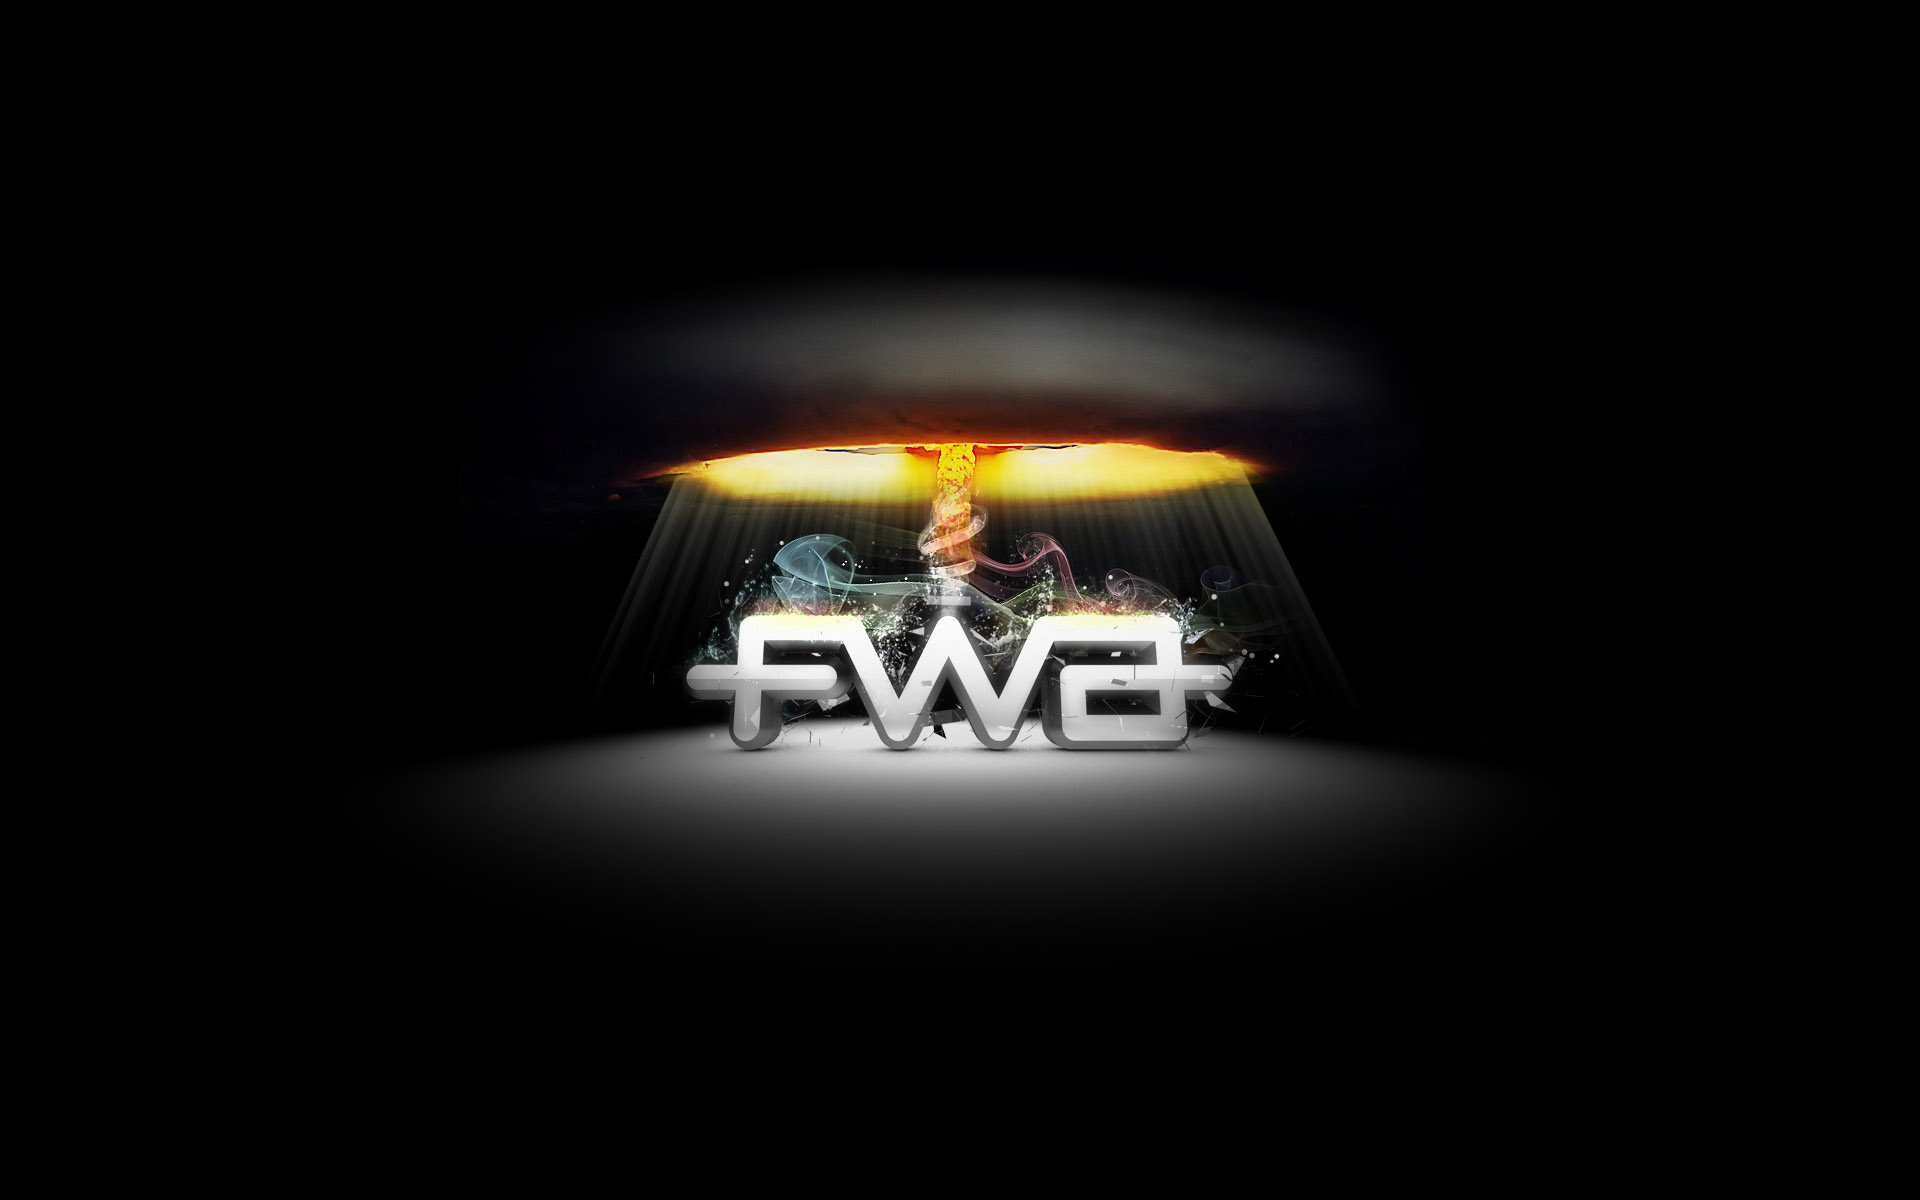 FWA wallpaper widescreen 23870